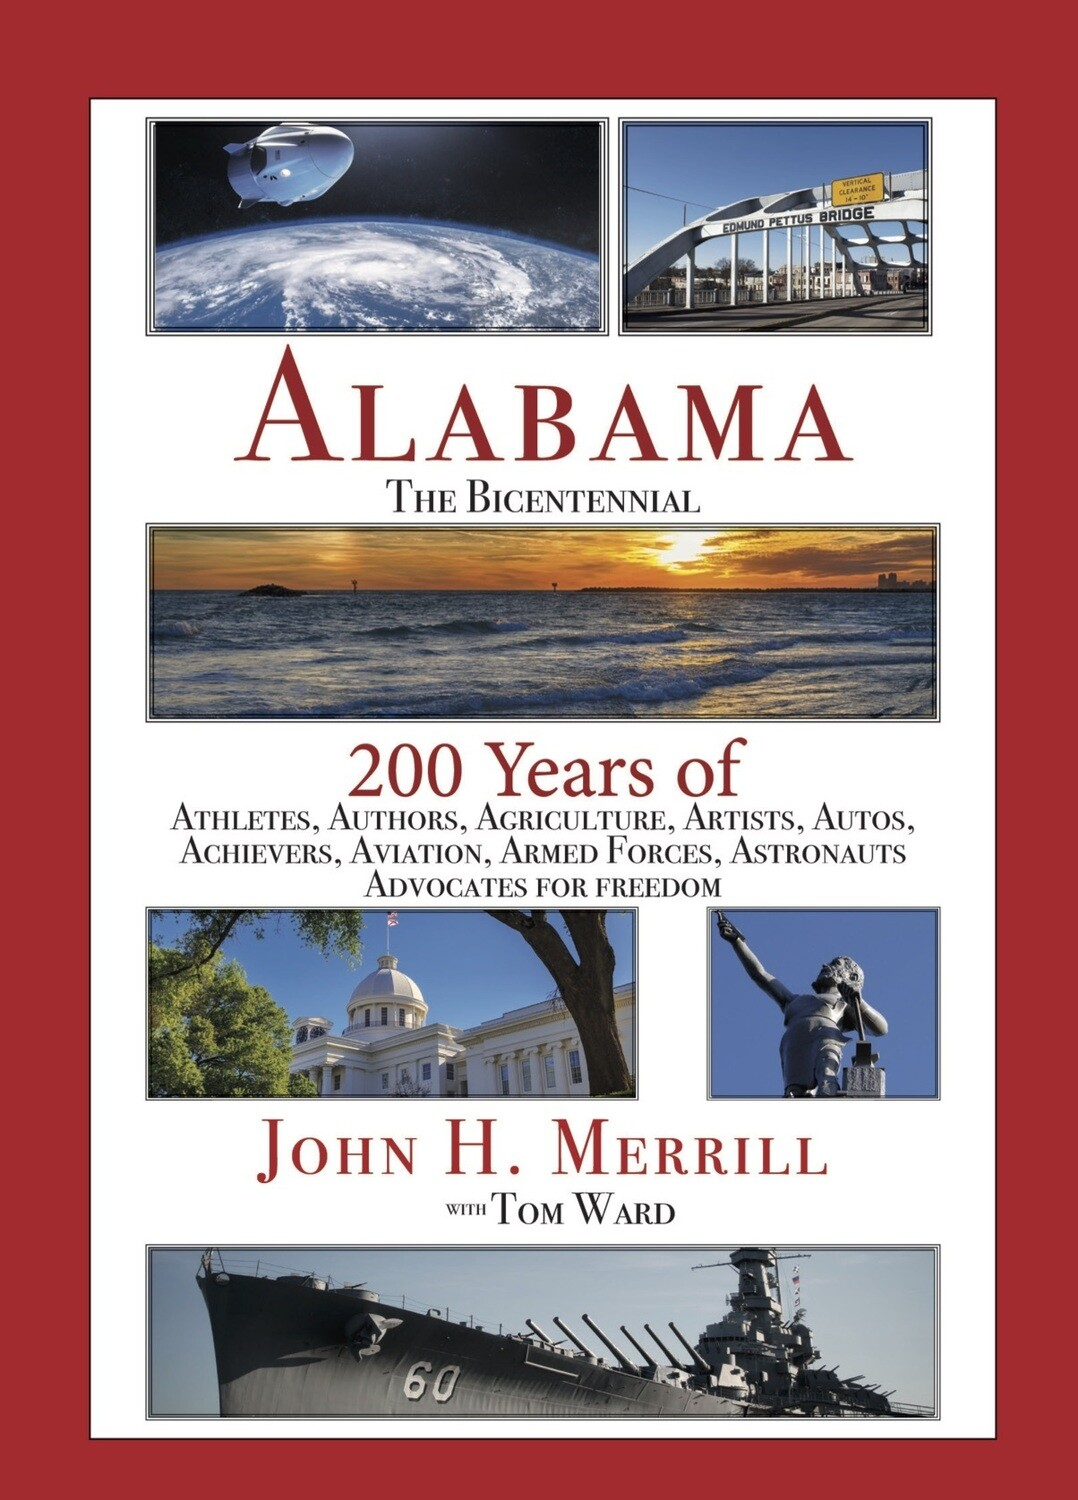 Alabama: The Bicentennial by John H. Merrill with Tom Ward